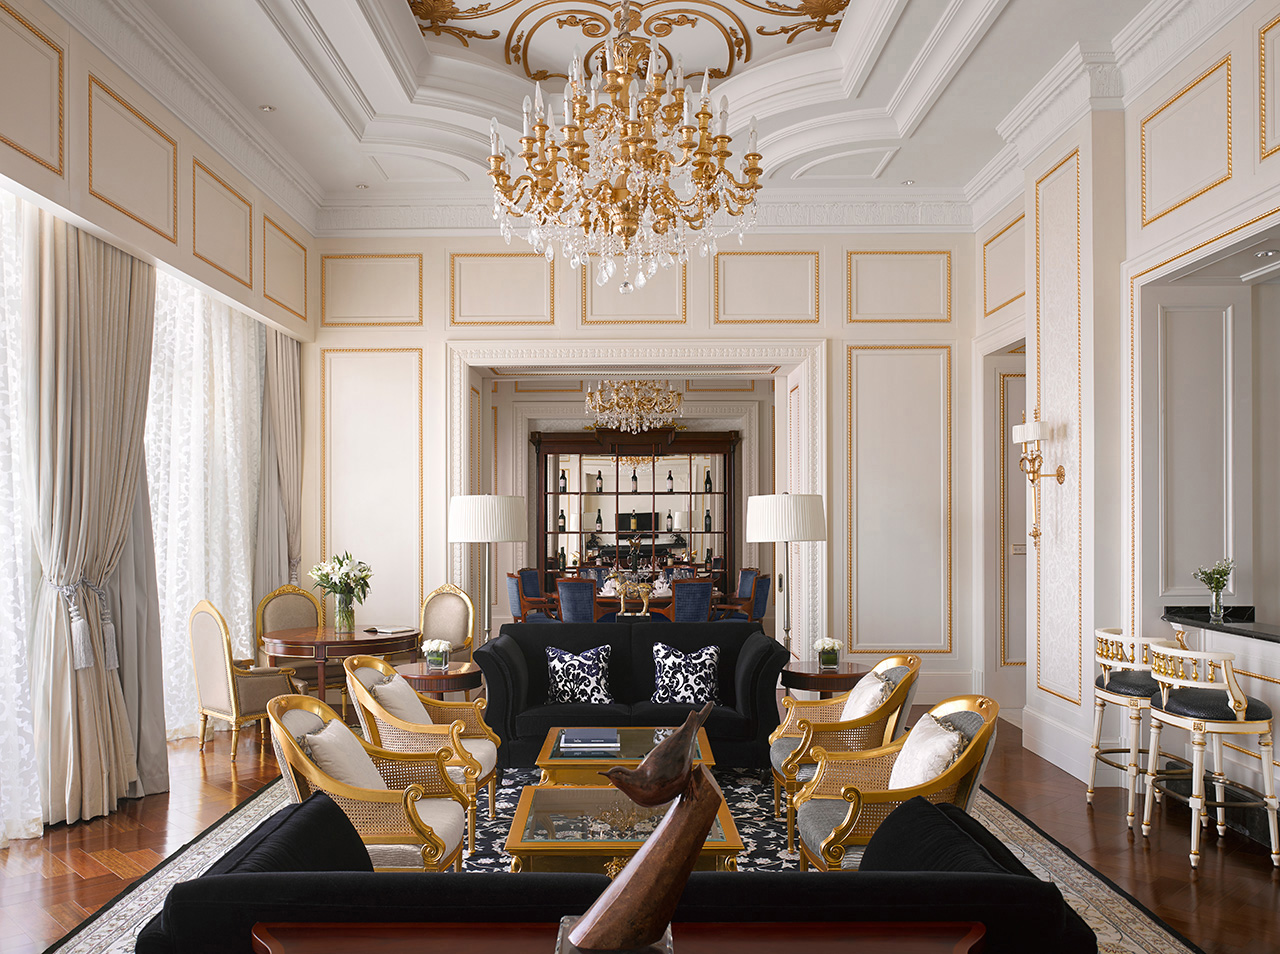 The Castle Hotel, A Luxury Collection Hotel, Dalian